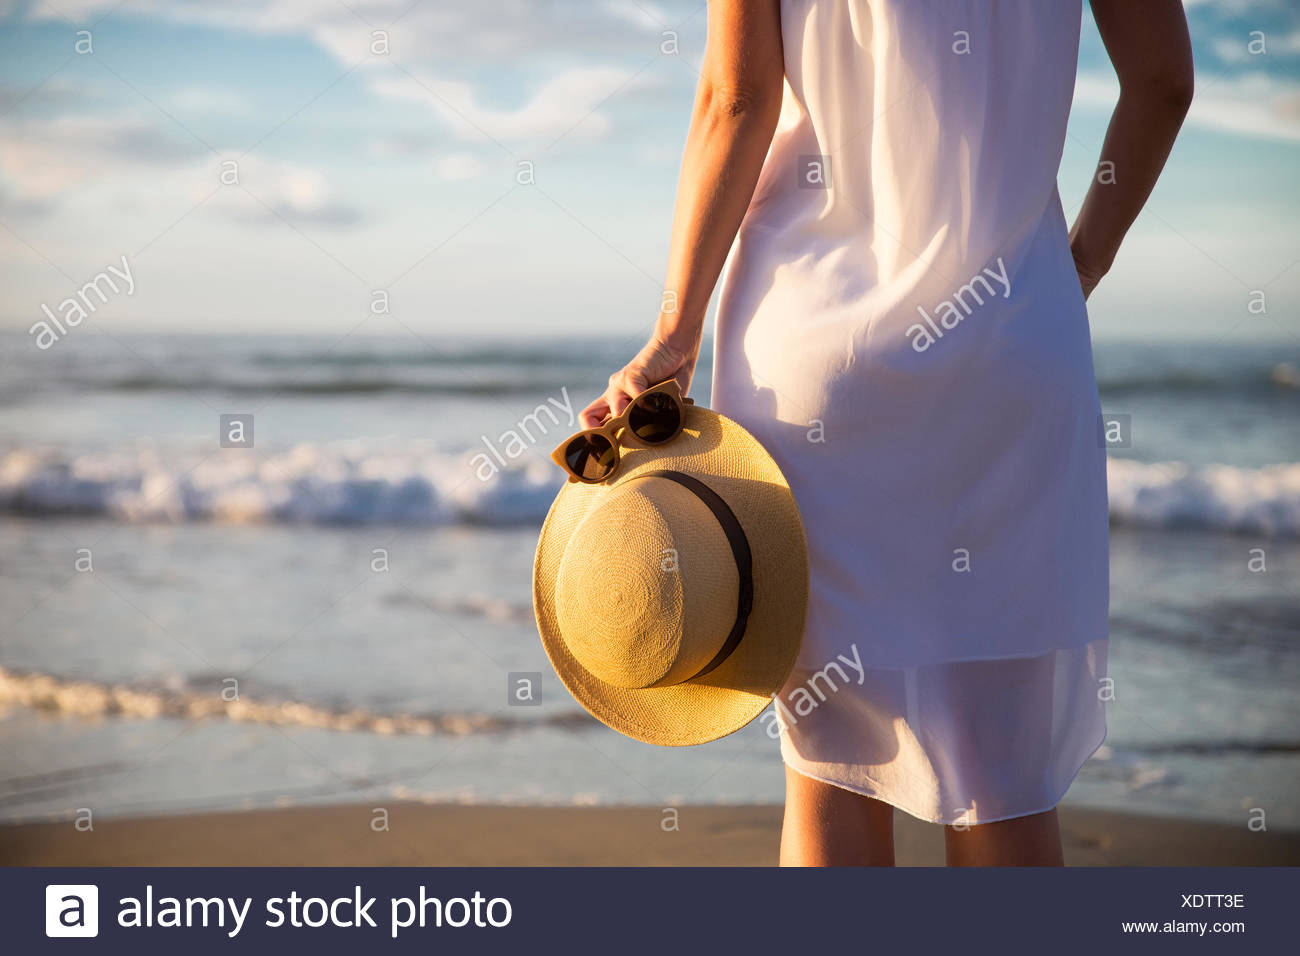 Rear view of woman in white dress standing on beach et holding hat Photo Stock